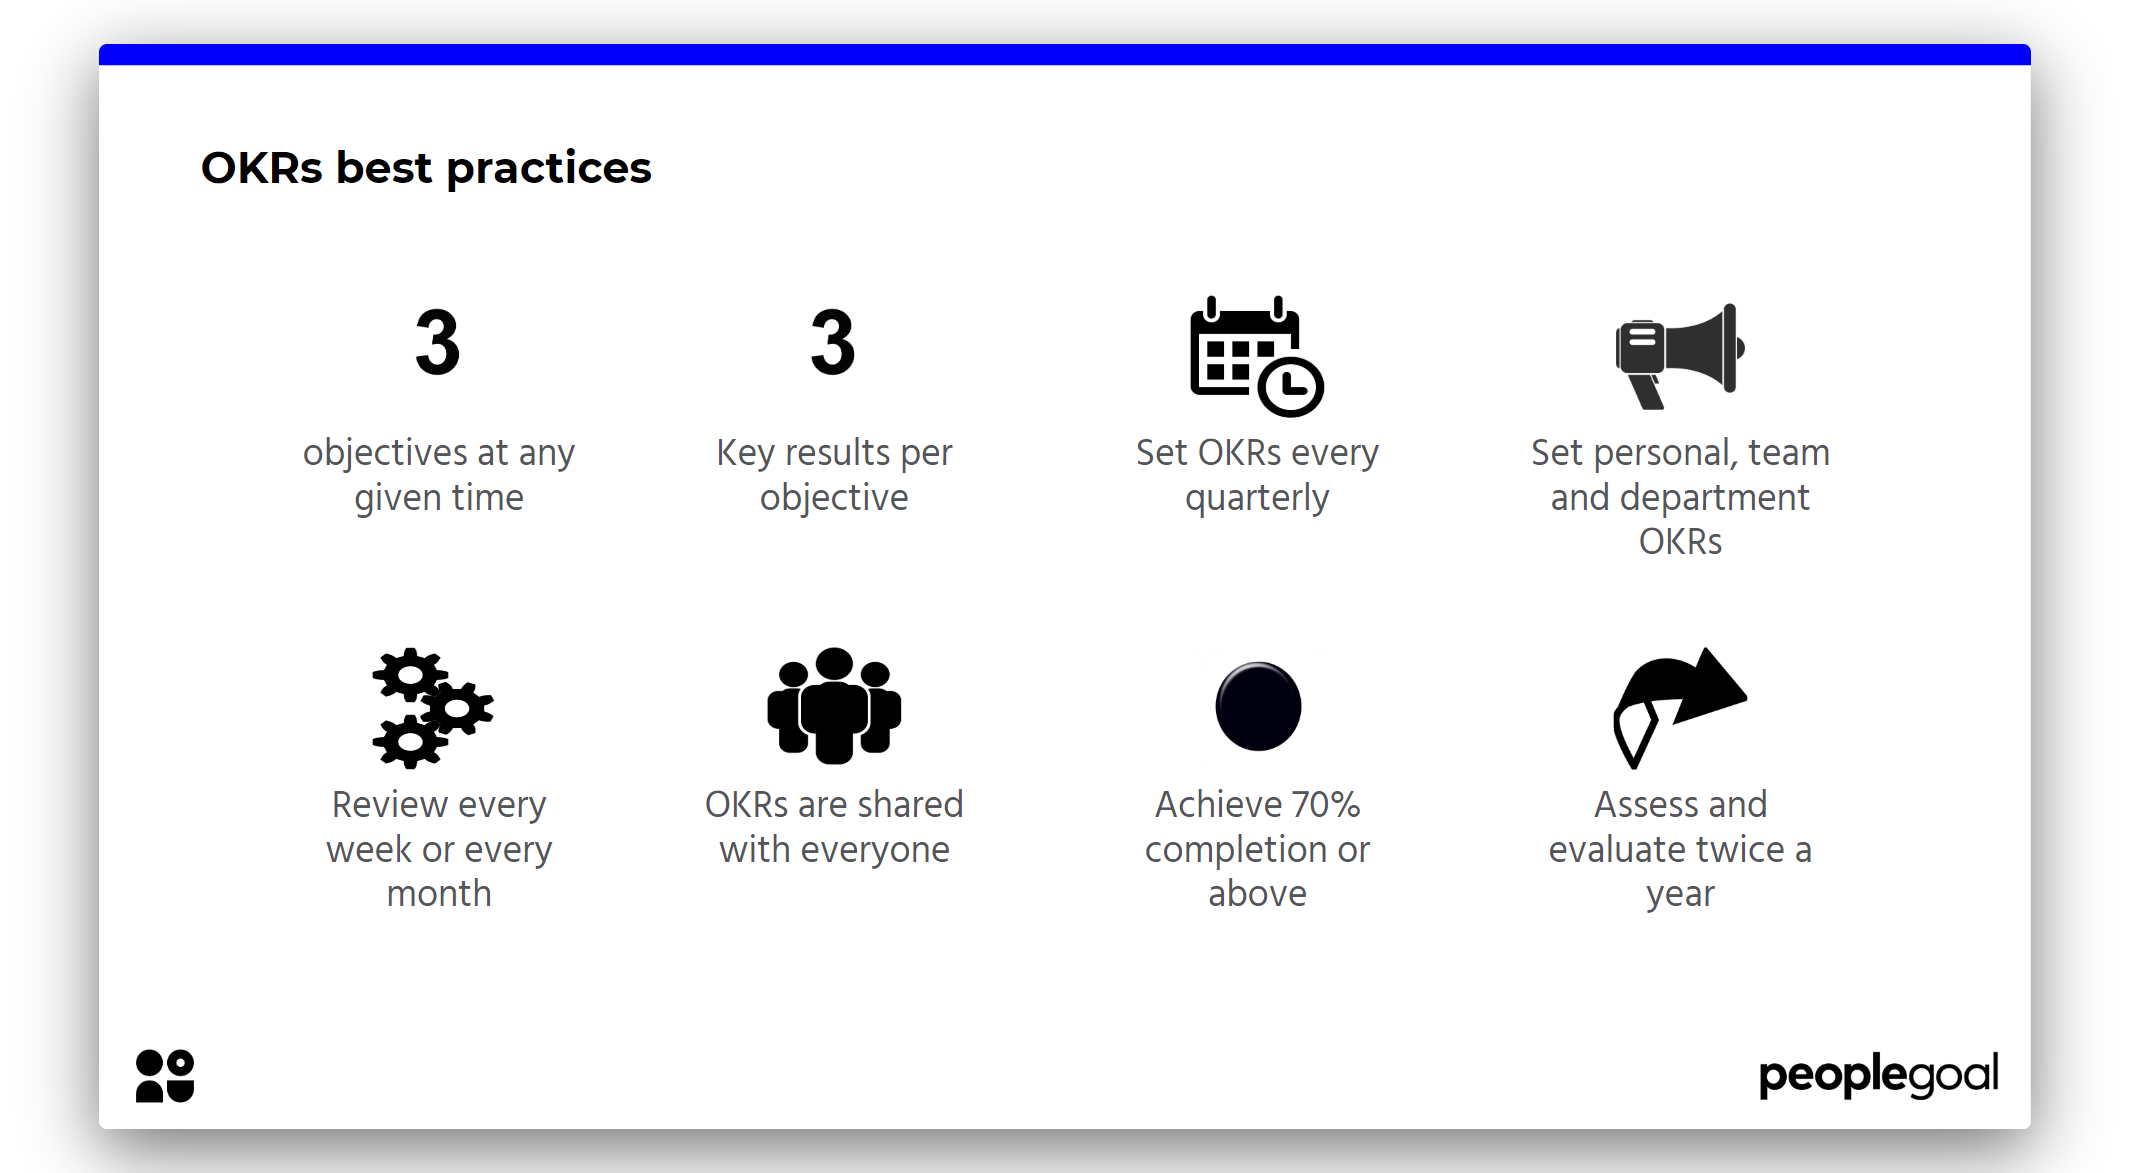 OKRs Software - Best Practices